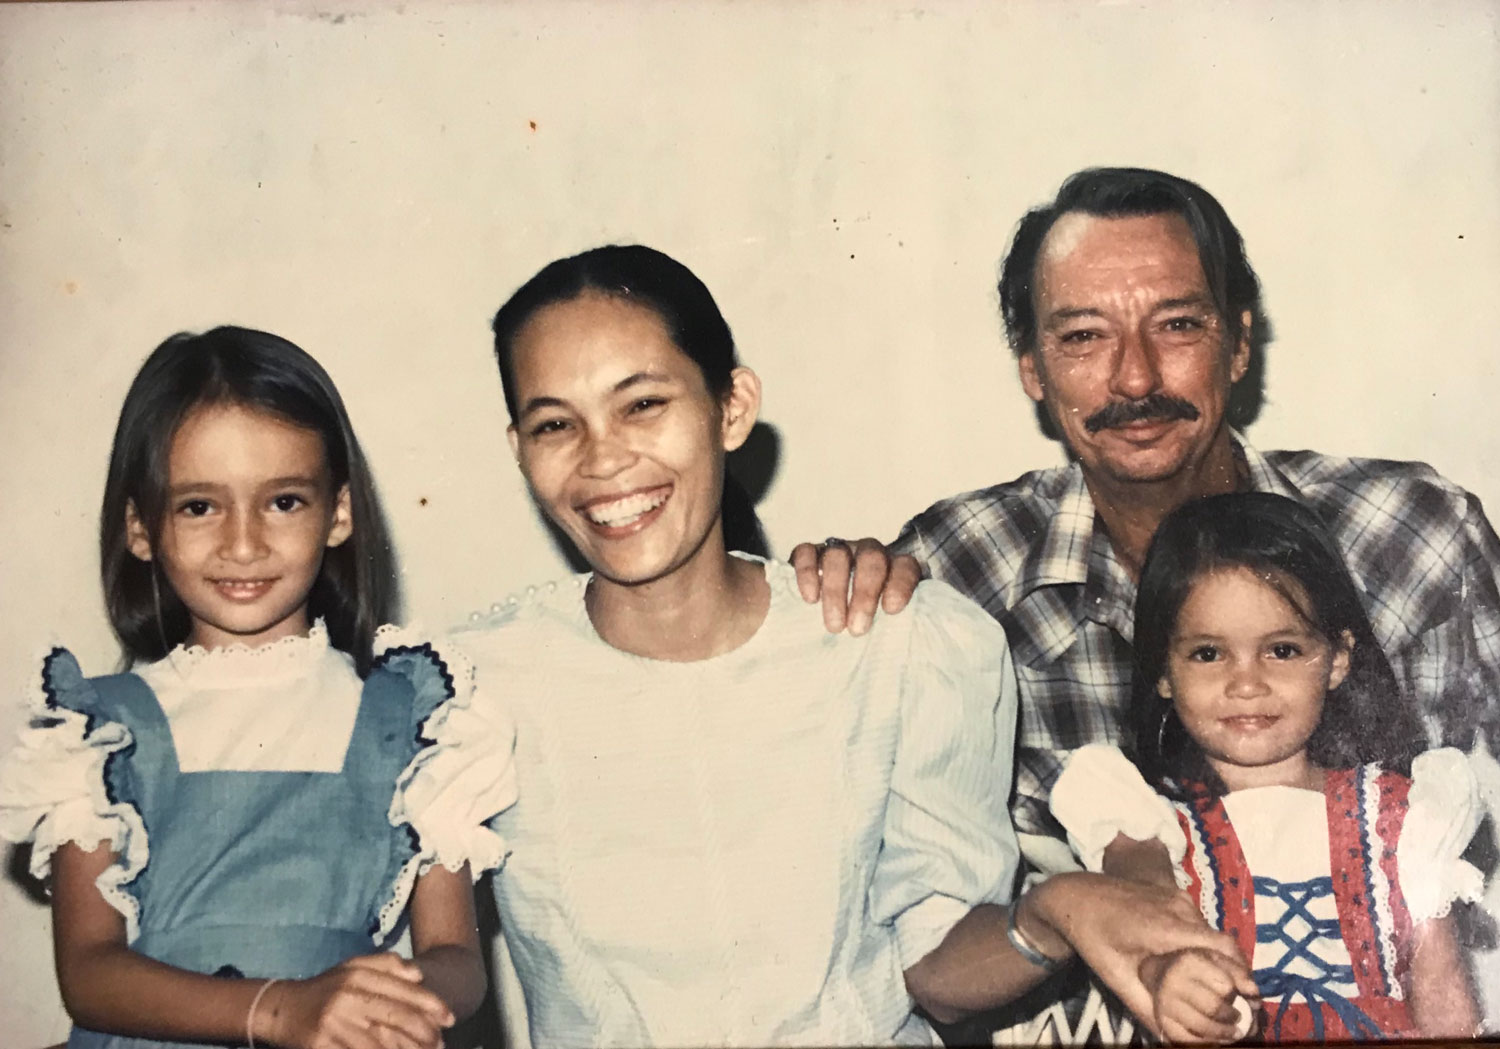 L-R: My sister Shelley, Mom, Dad, and me. This was taken in a studio in Manila before we moved to the U.S. for the first time. It is our only family portrait.